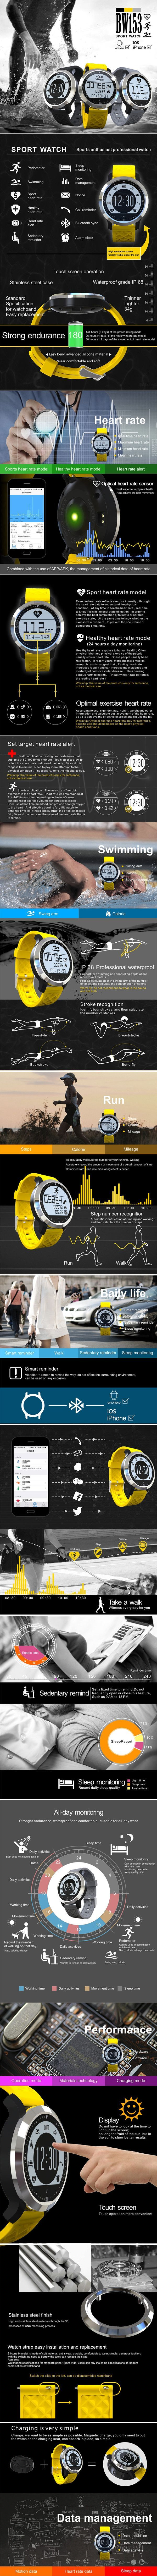 GX-BW153 Smart Bracelet Sleep Heart Rate Monitor IP68 Waterproof Fitness Tracker Sport Watch at Banggood - mens waterproof watches, mens watches buy online, quality mens watches - smart bracelet fitness tracker watches - amzn.to/2ijjZXZ Electronics - Wearable Technology - Clips, Arm & Wristbands - Women's Smart Watches for Sport - http://amzn.to/2kHNvw9